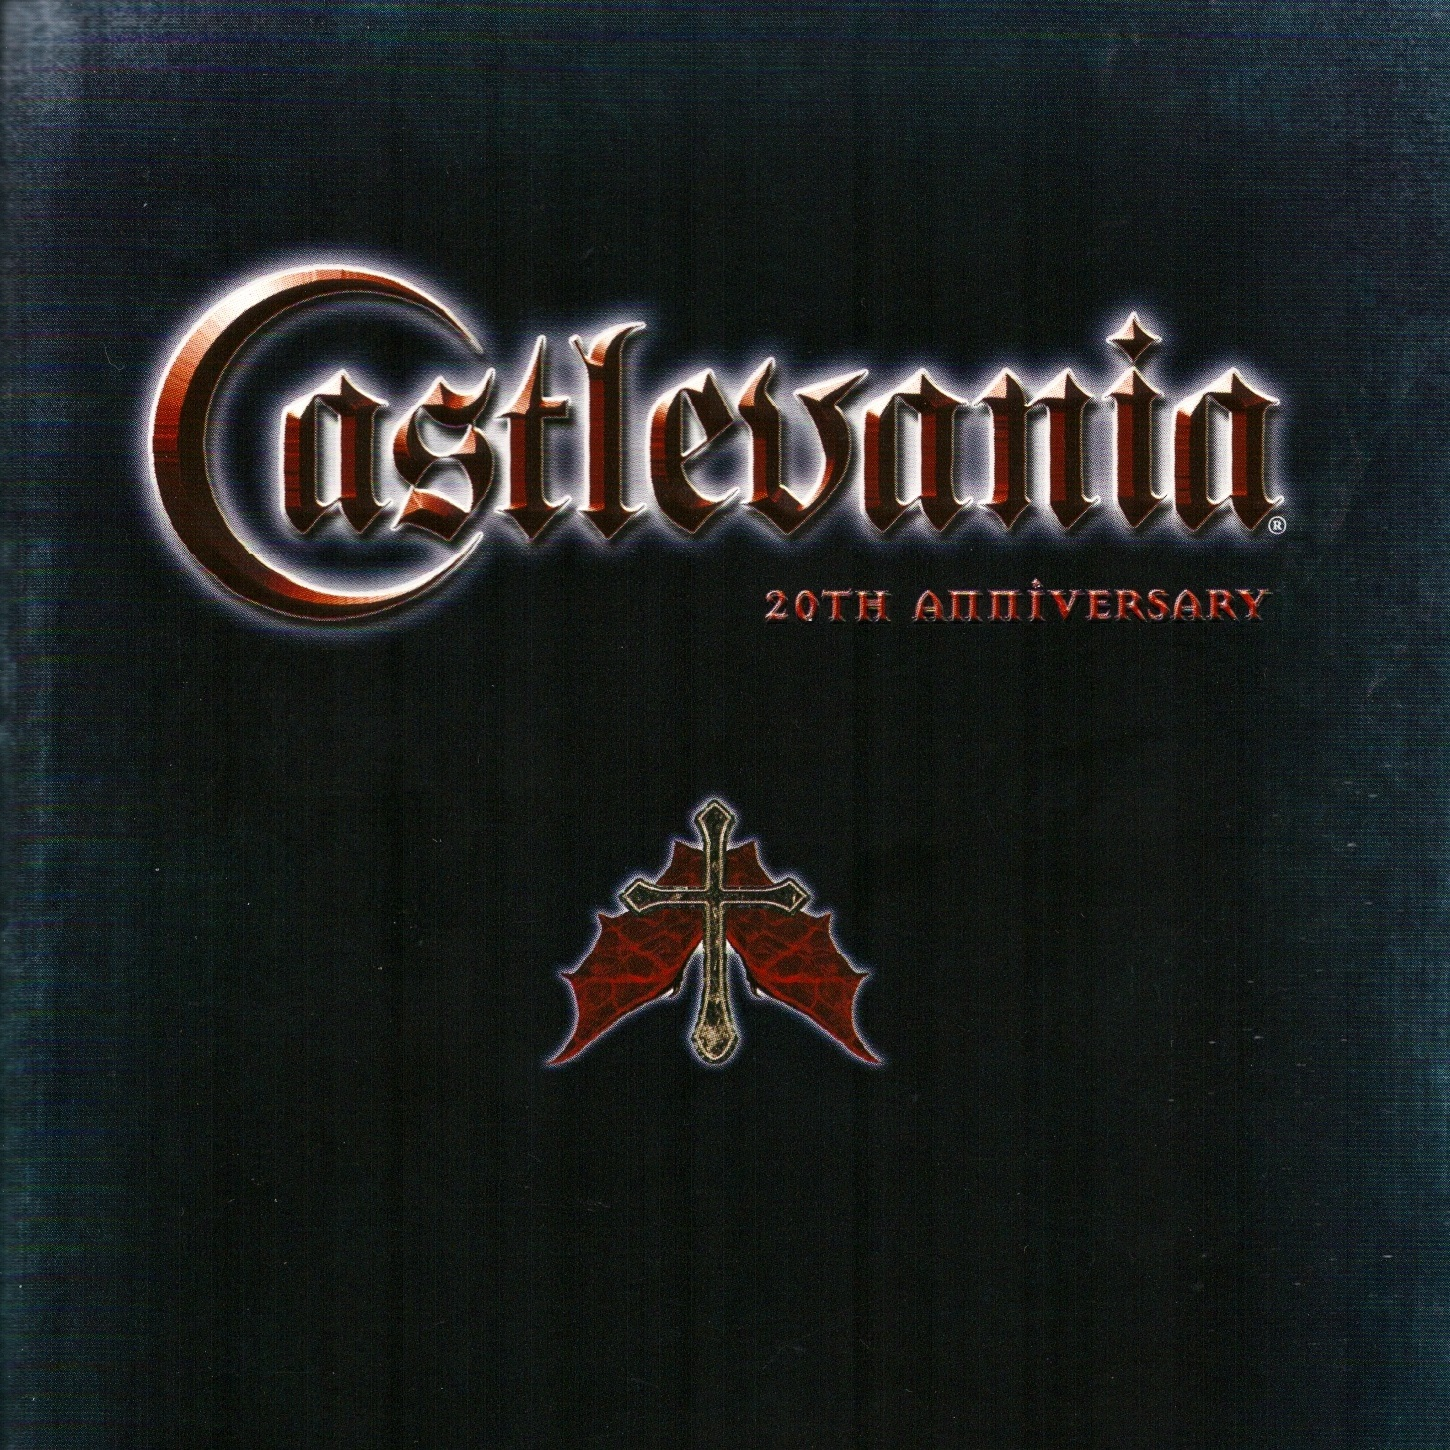 Castlevania 20th Anniversary Deluxe Music Co..